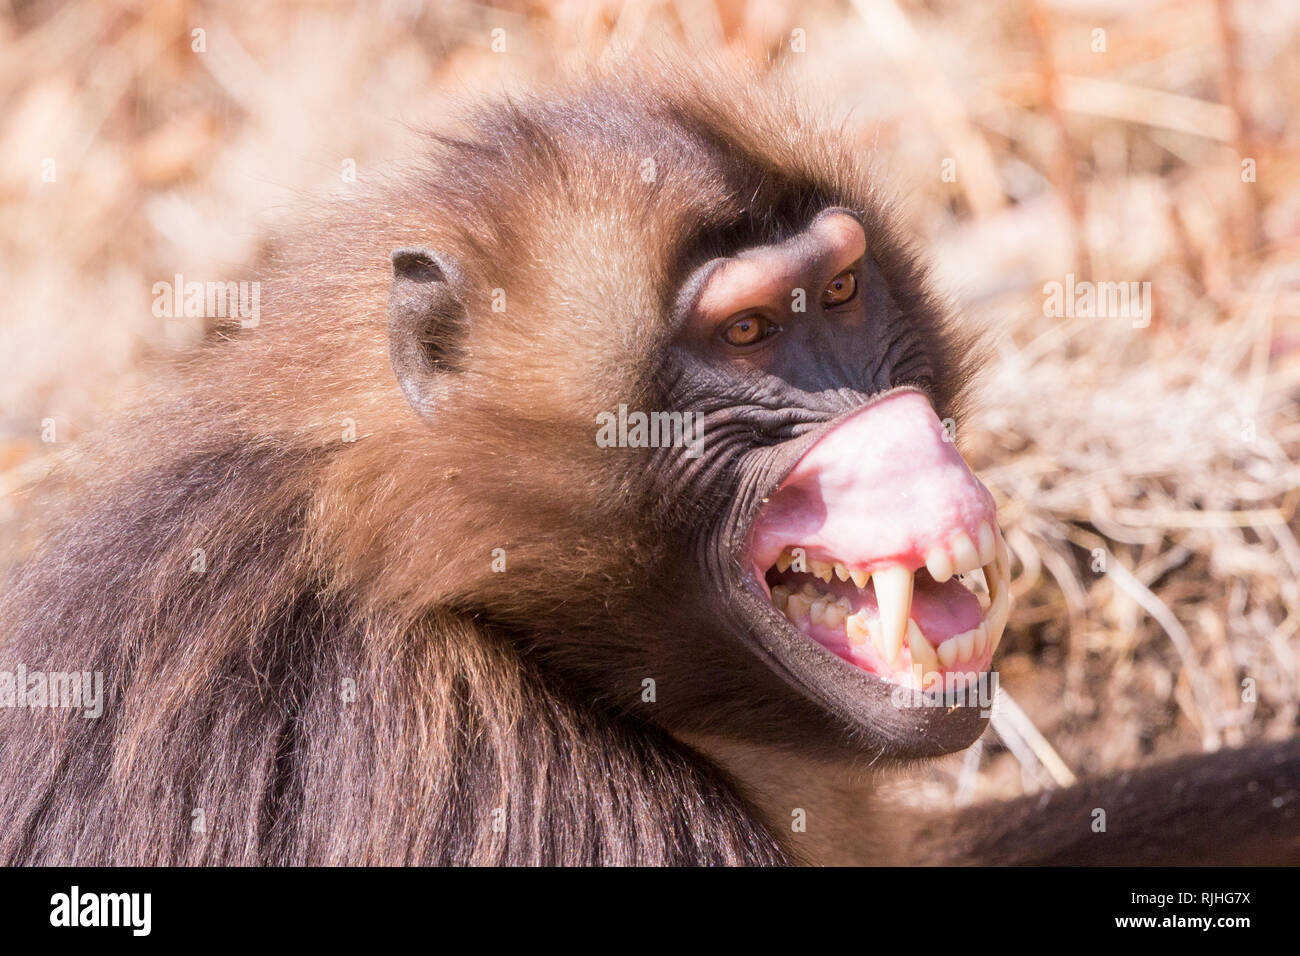 Gelada Baboon (Theropithecus gelada). Male in intimidation posture, roll up the chops to show a large clear spot. Ethiopia - Stock Image